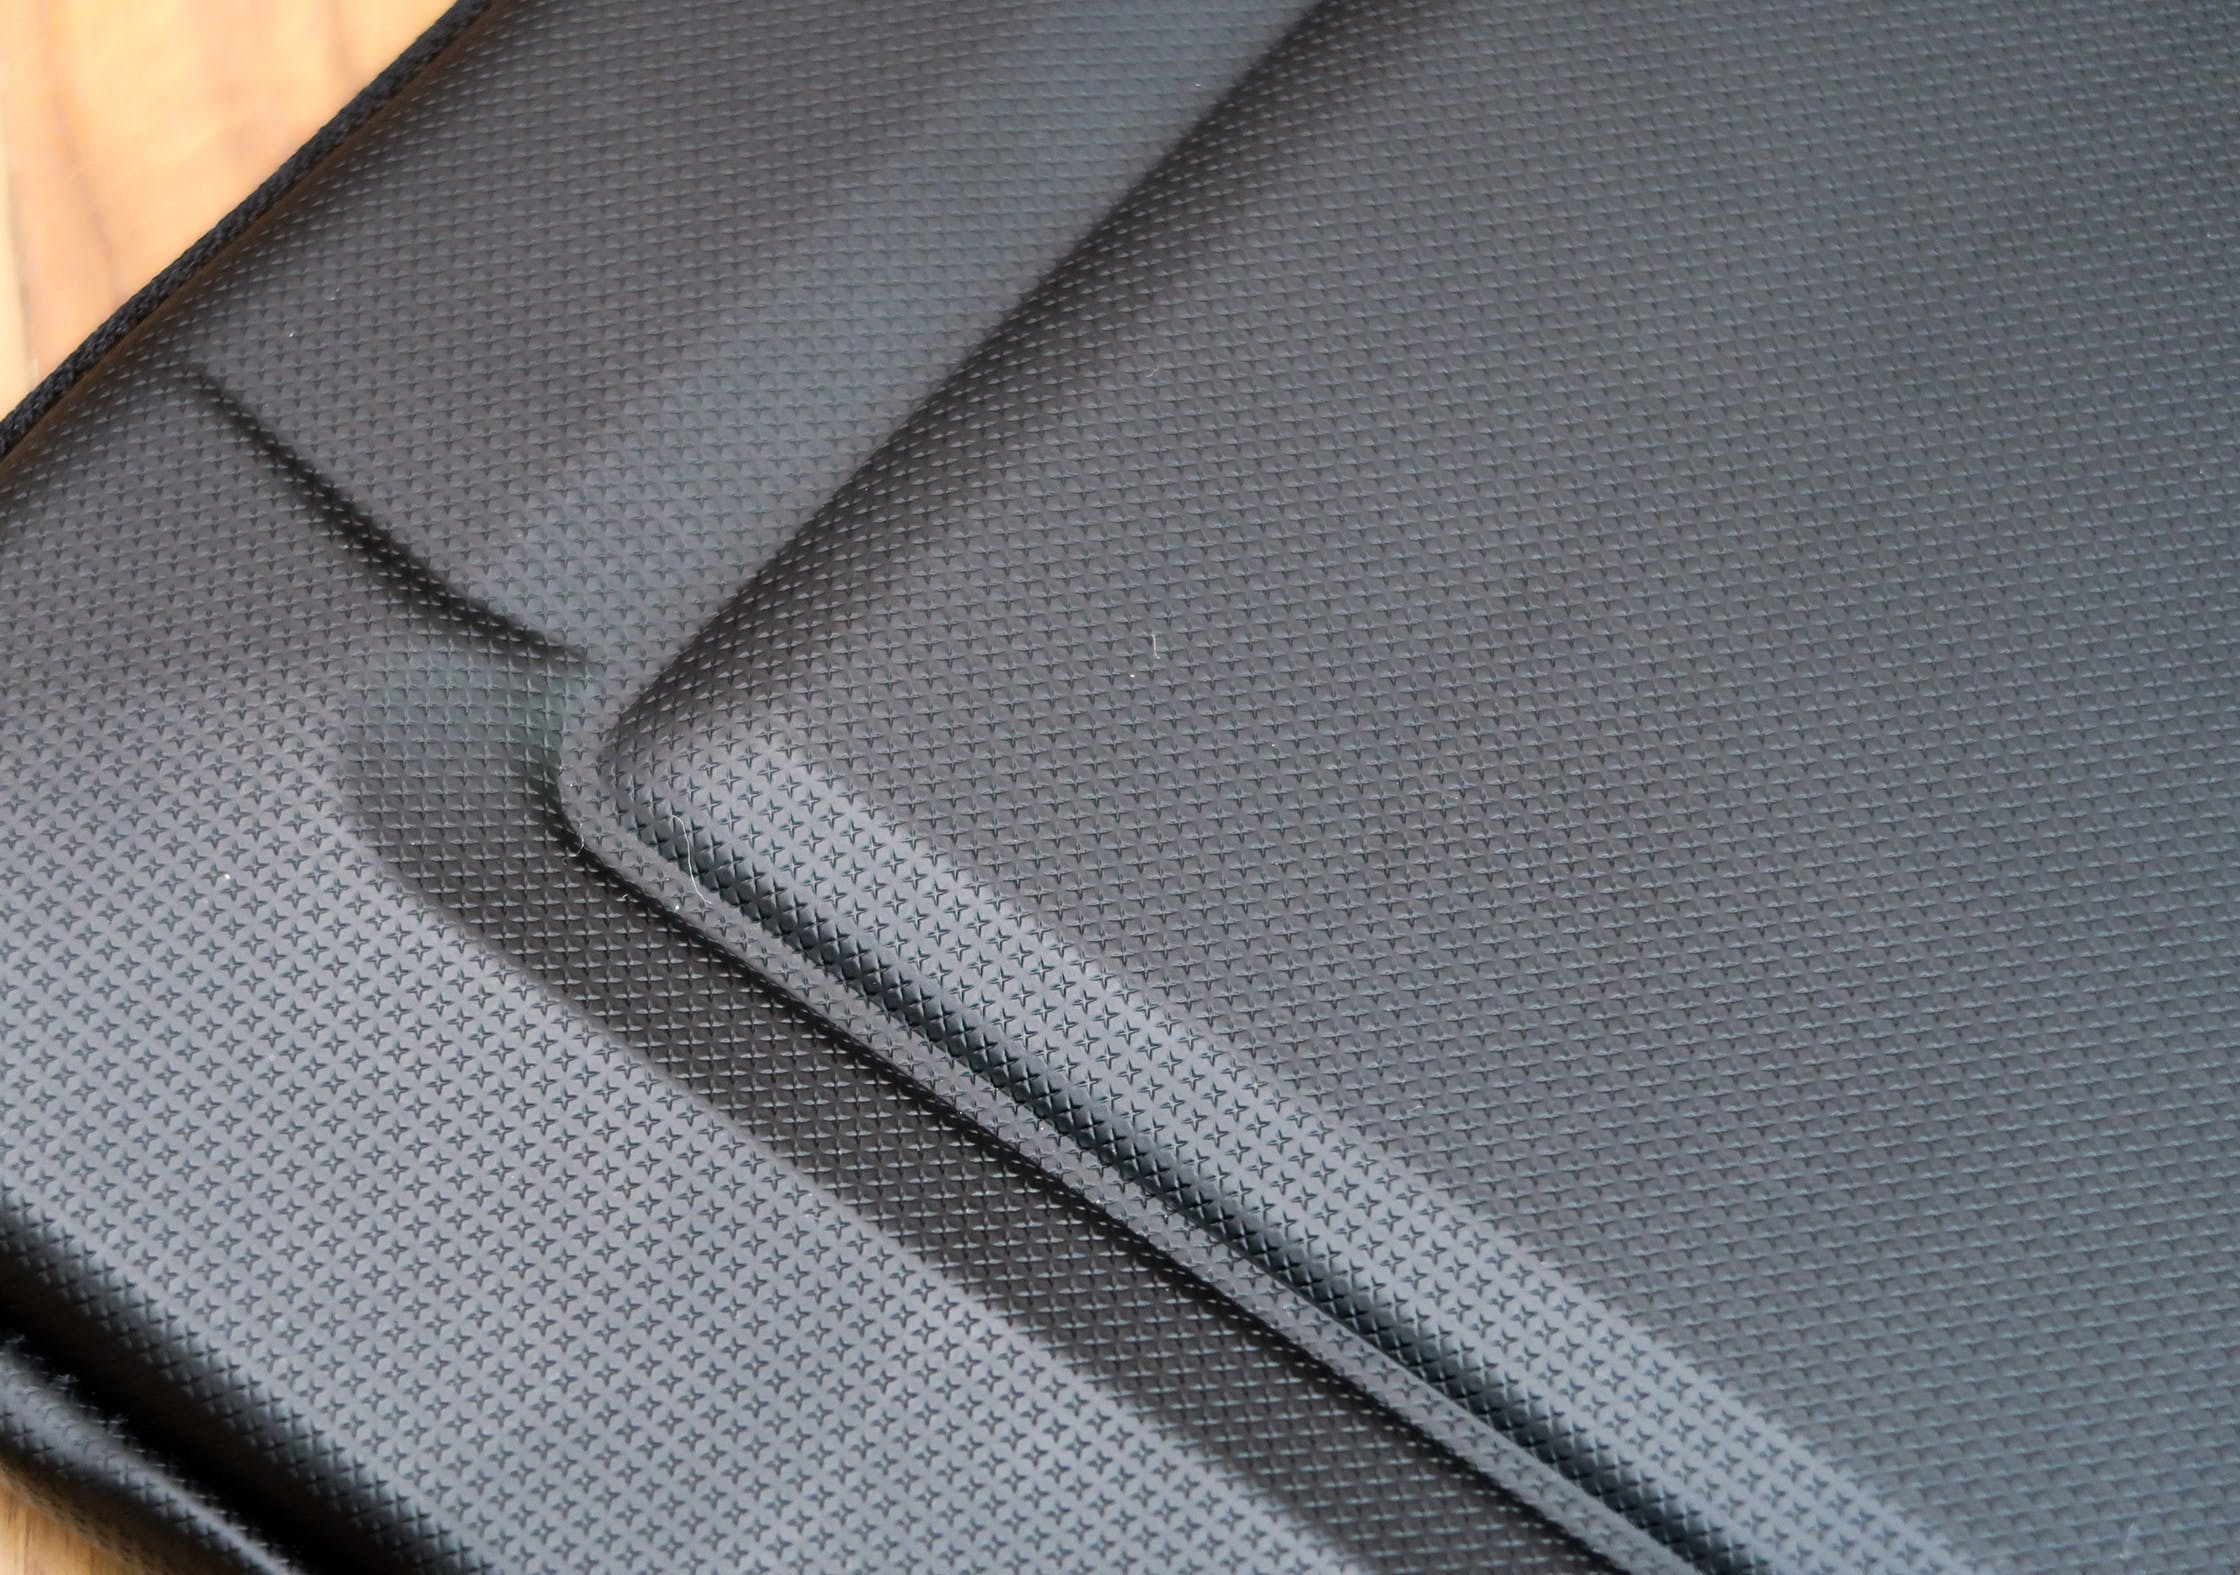 Protective Polyurethane Material On The Thule Gauntlet 3.0 Laptop Sleeve